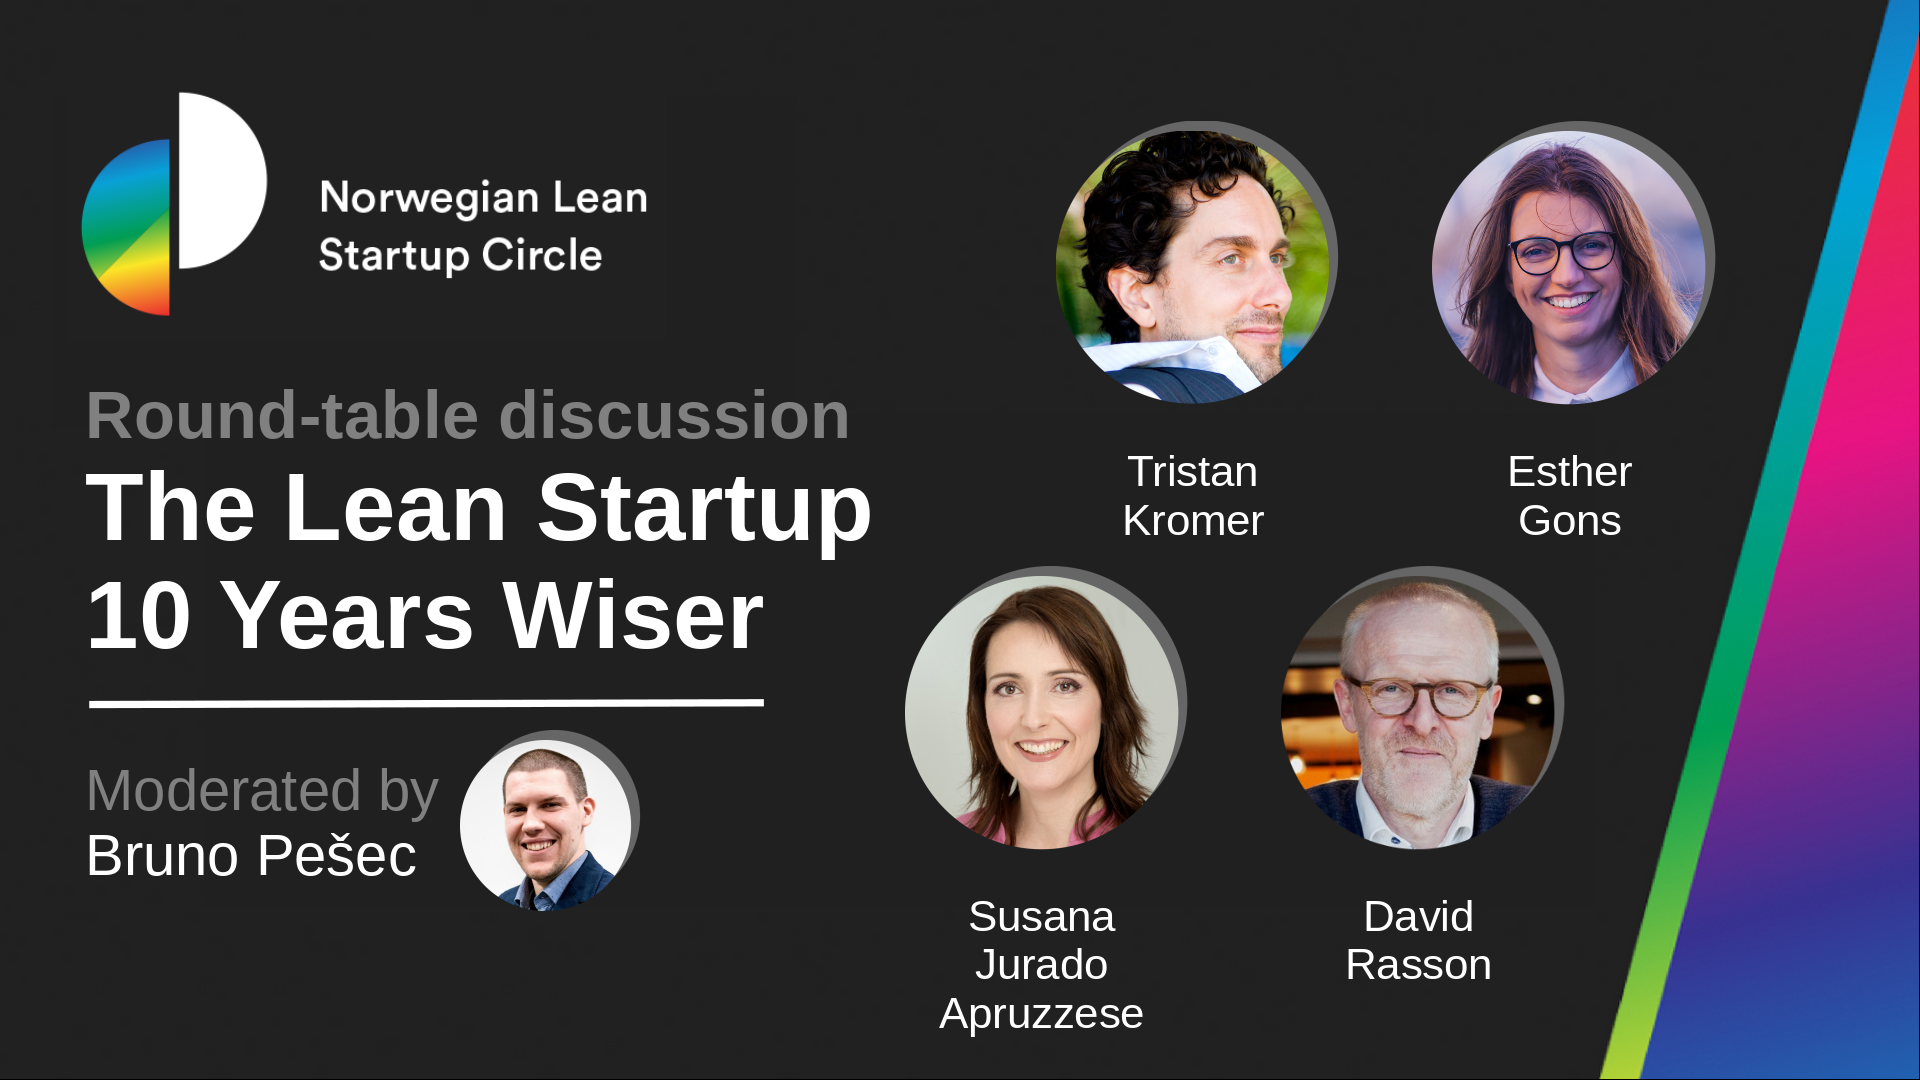 The Lean Startup: 10 Years Wiser